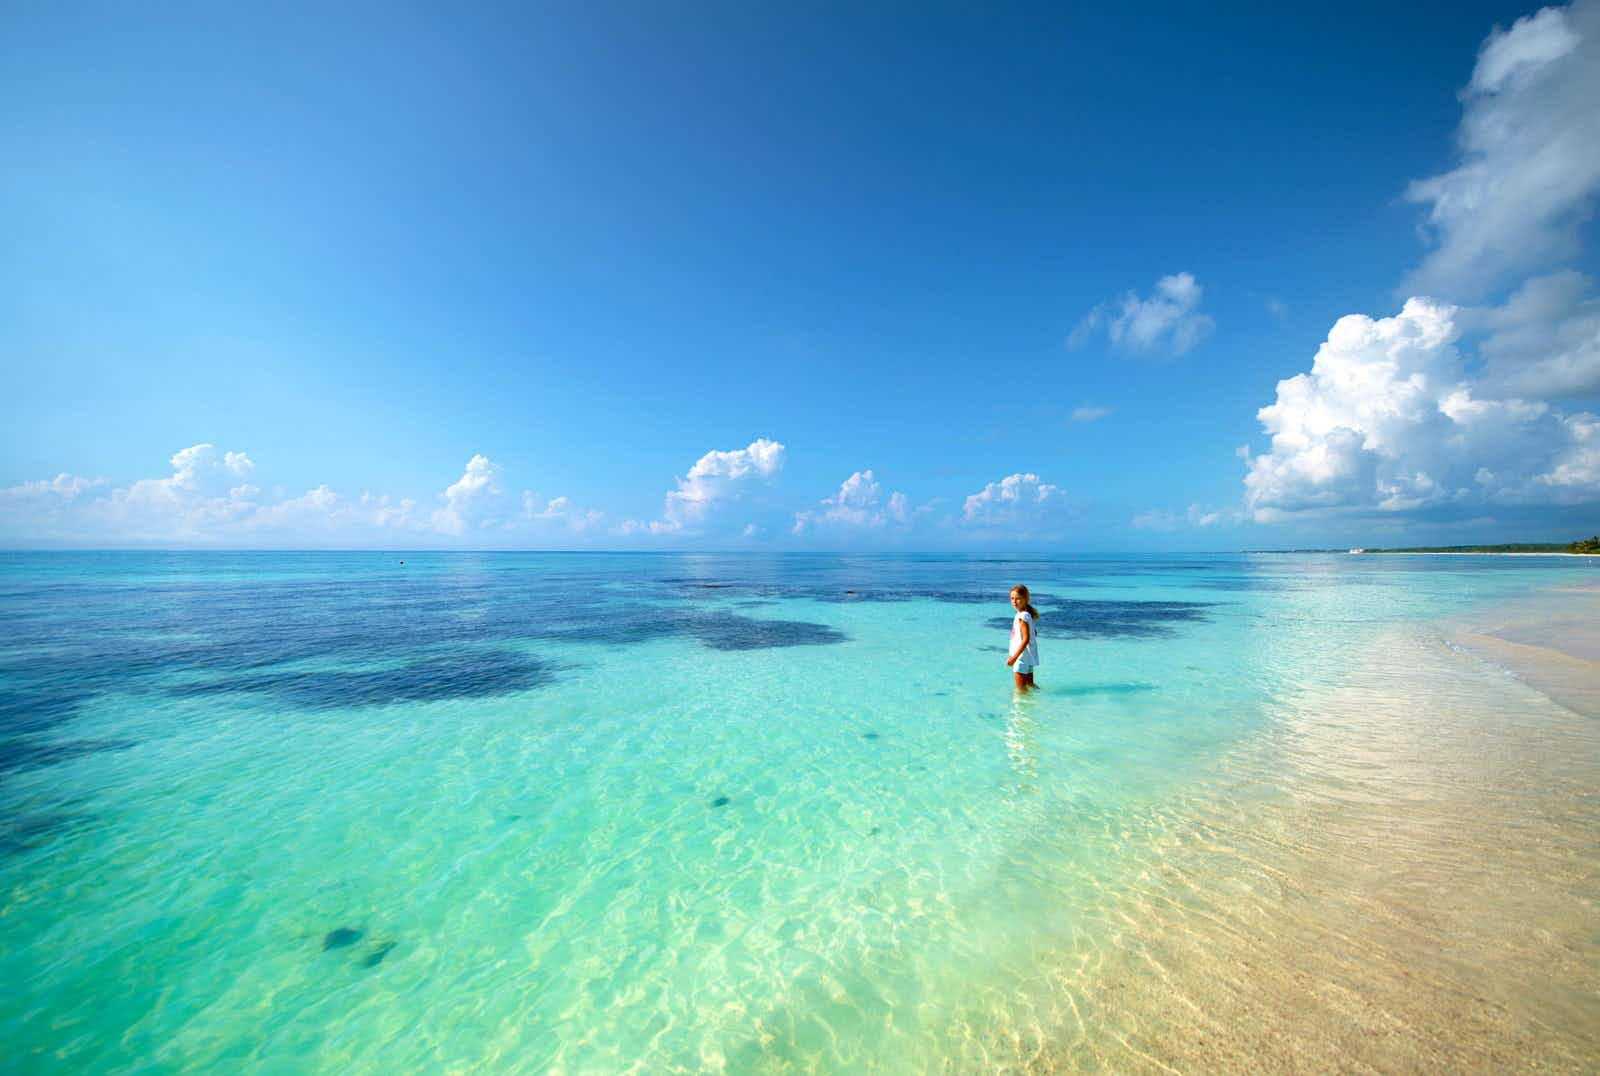 A girl stands in the shallow water of a turquoise ocean